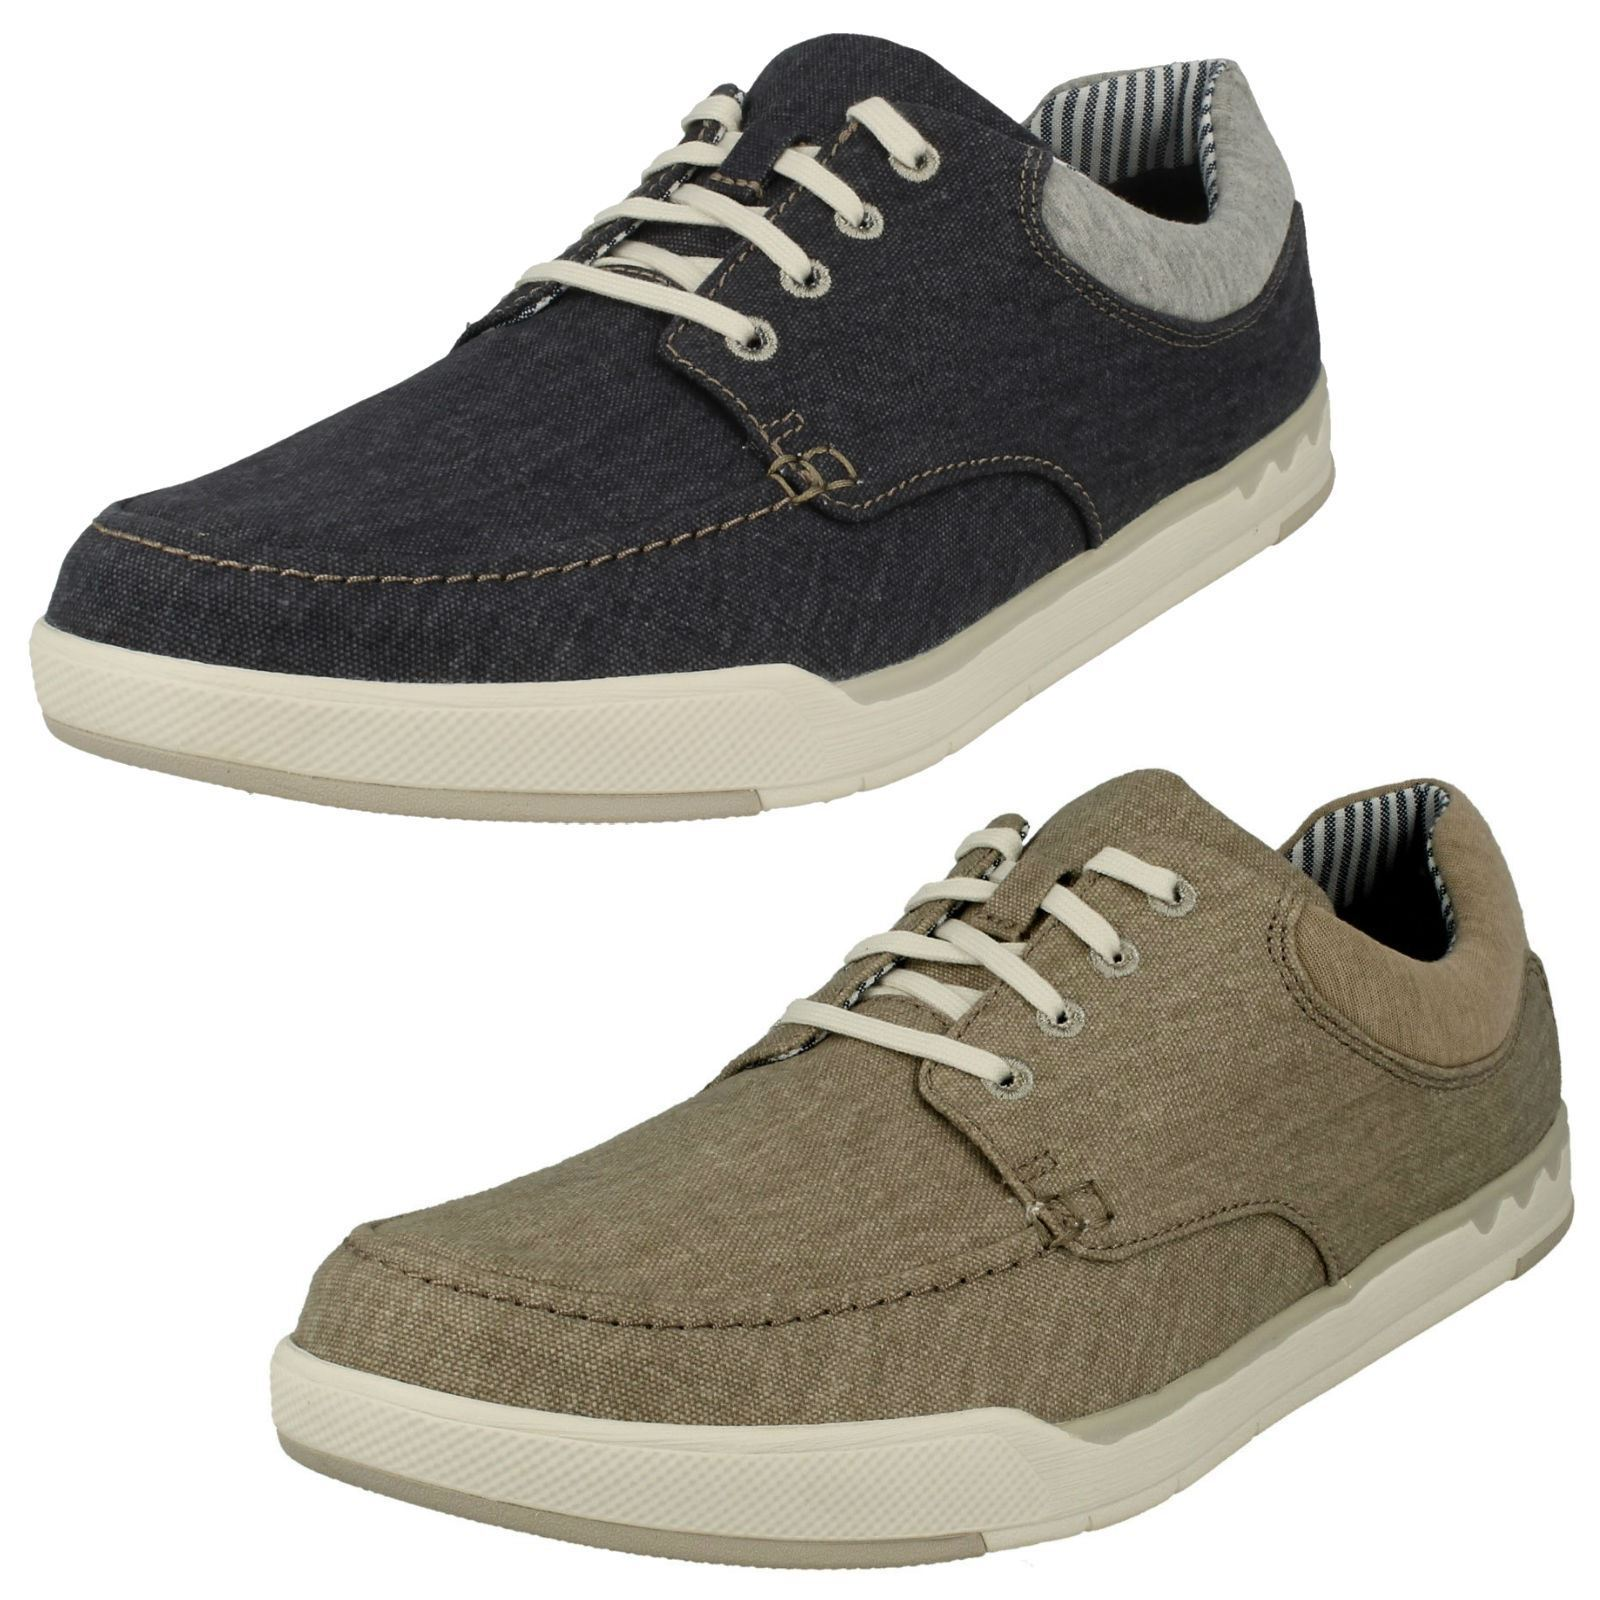 Clarks Mens Casual Lace Up Isle Shoes Step Isle Up Lace 0c7ee9